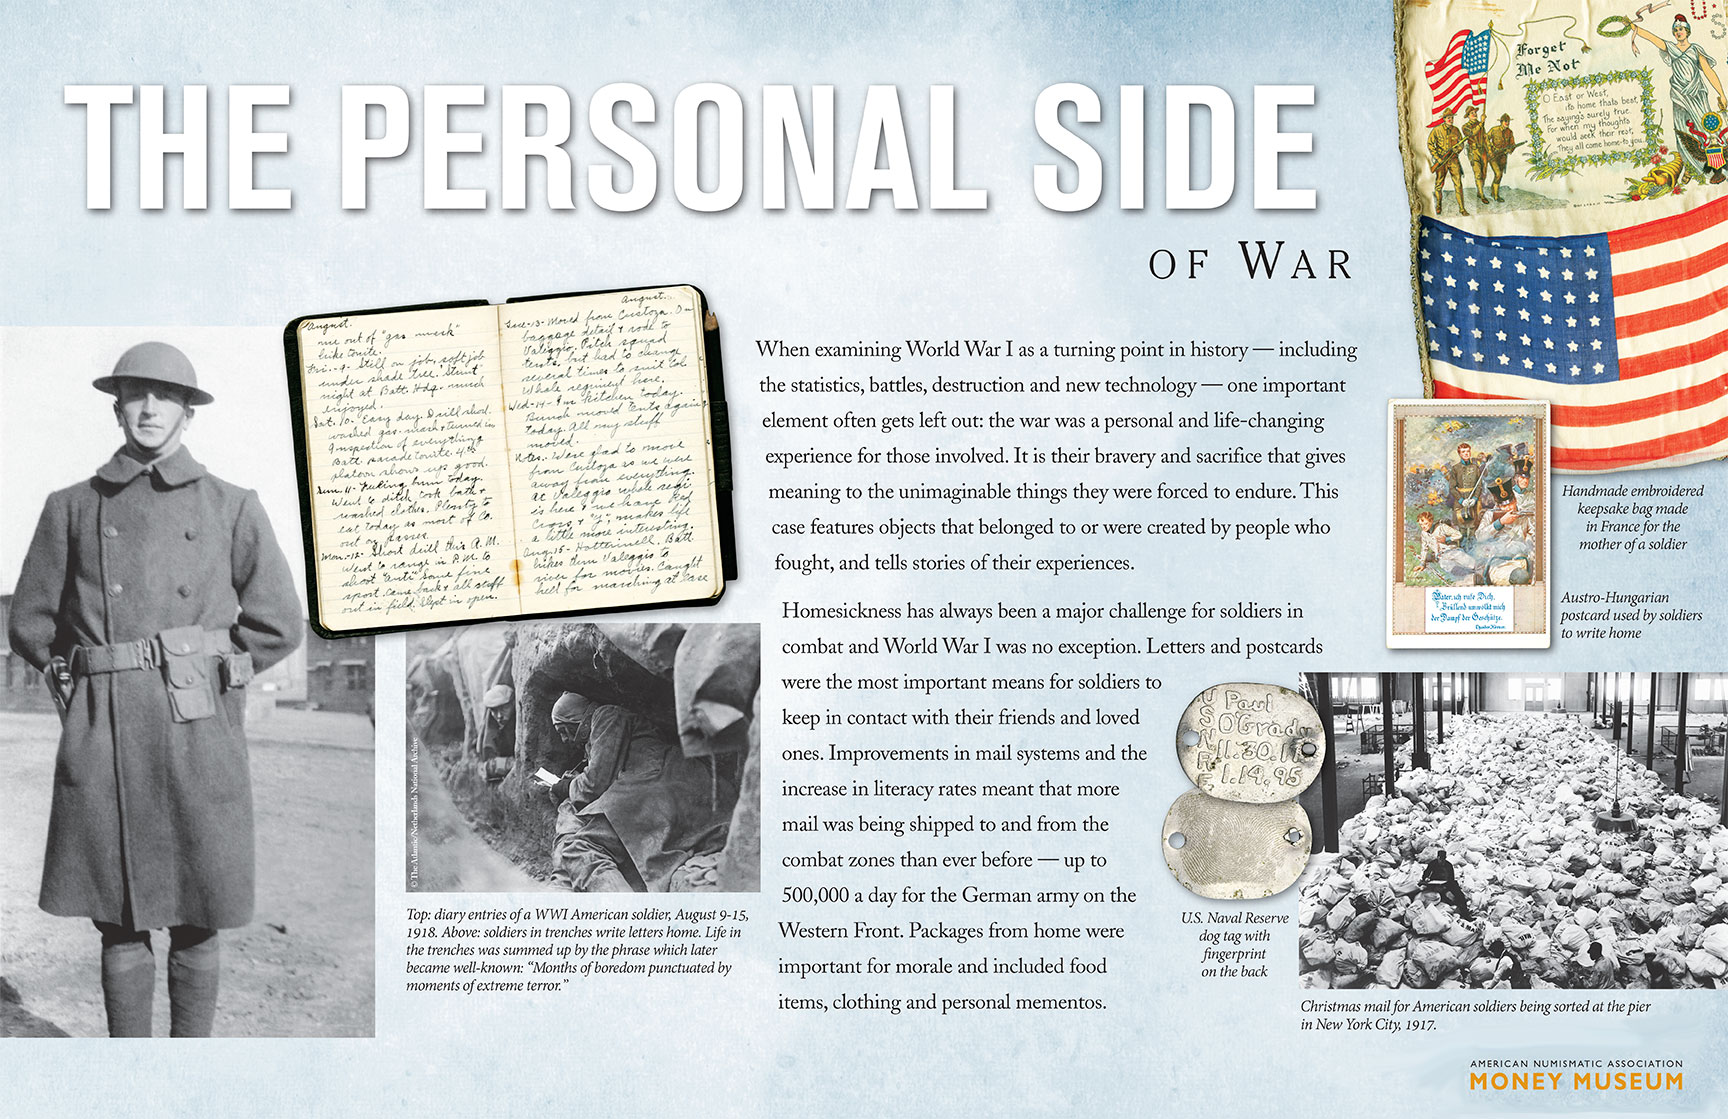 World War I Virtual Museum Exhibit: The Personal Side of War